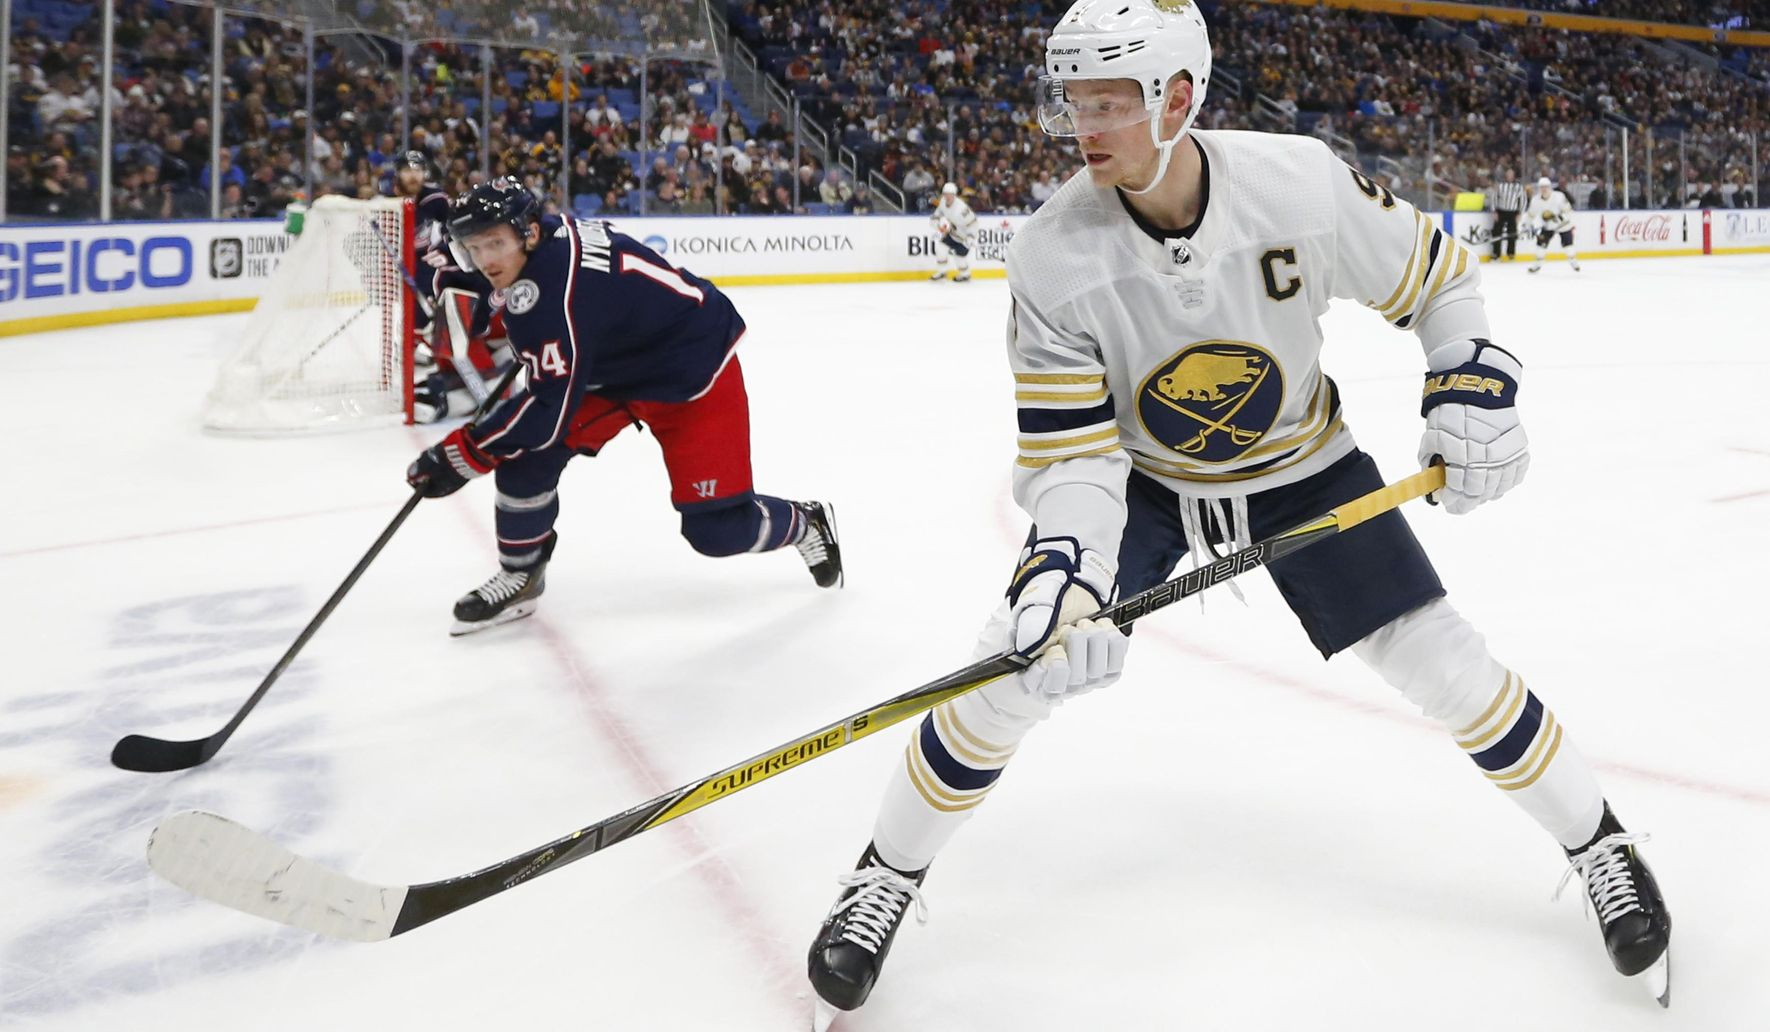 Blue_jackets_sabres_hockey_53830_c0-151-3600-2249_s1770x1032